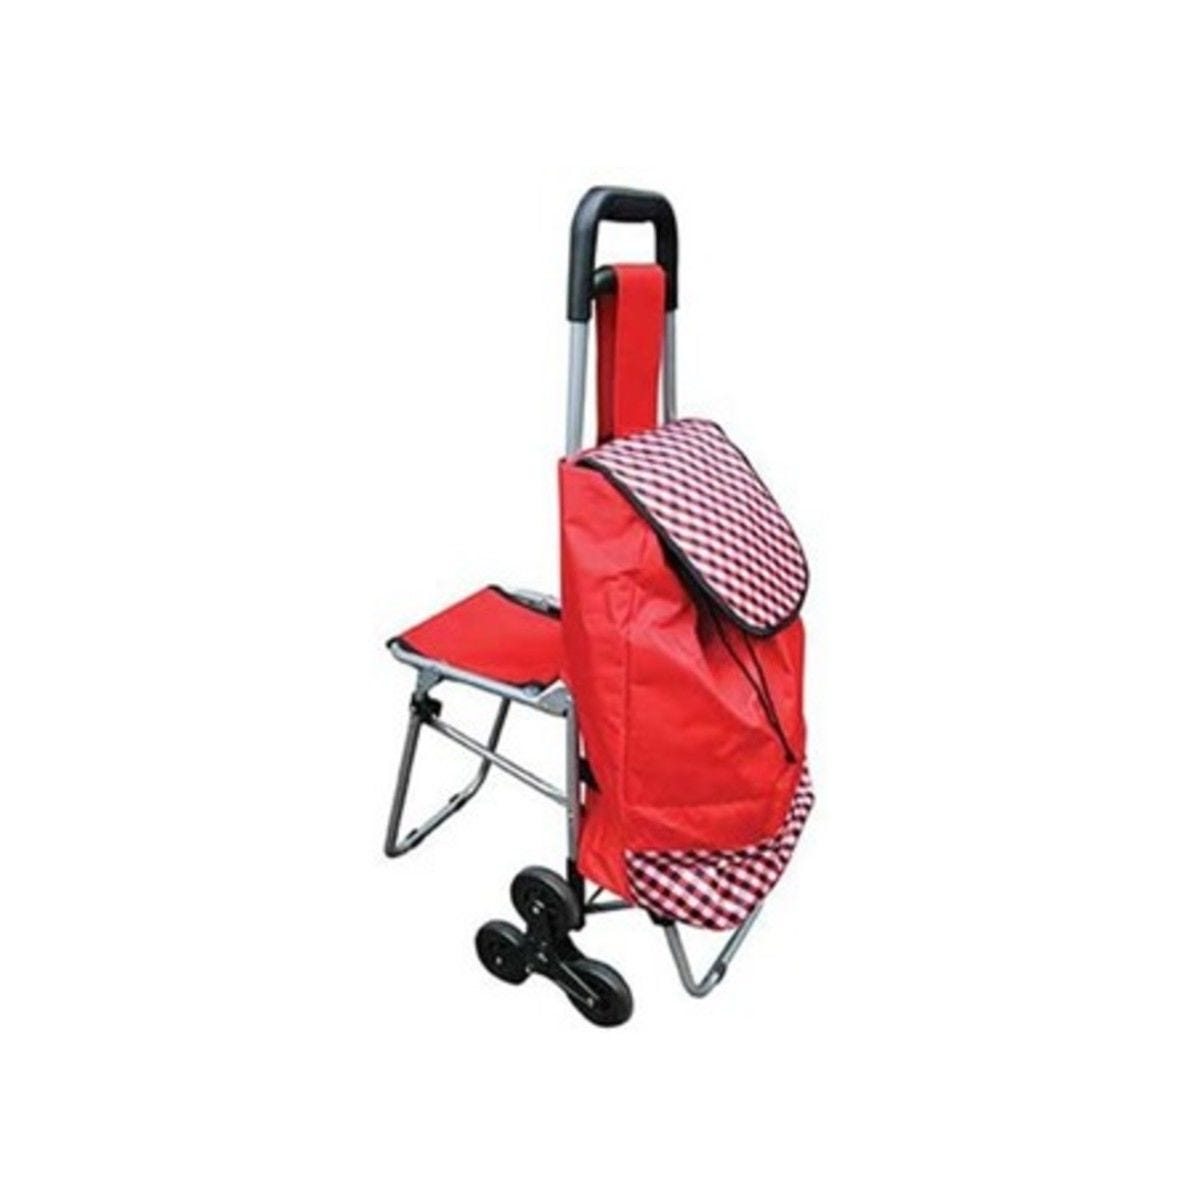 Active Living Shopping Trolley with Fold Down Seat